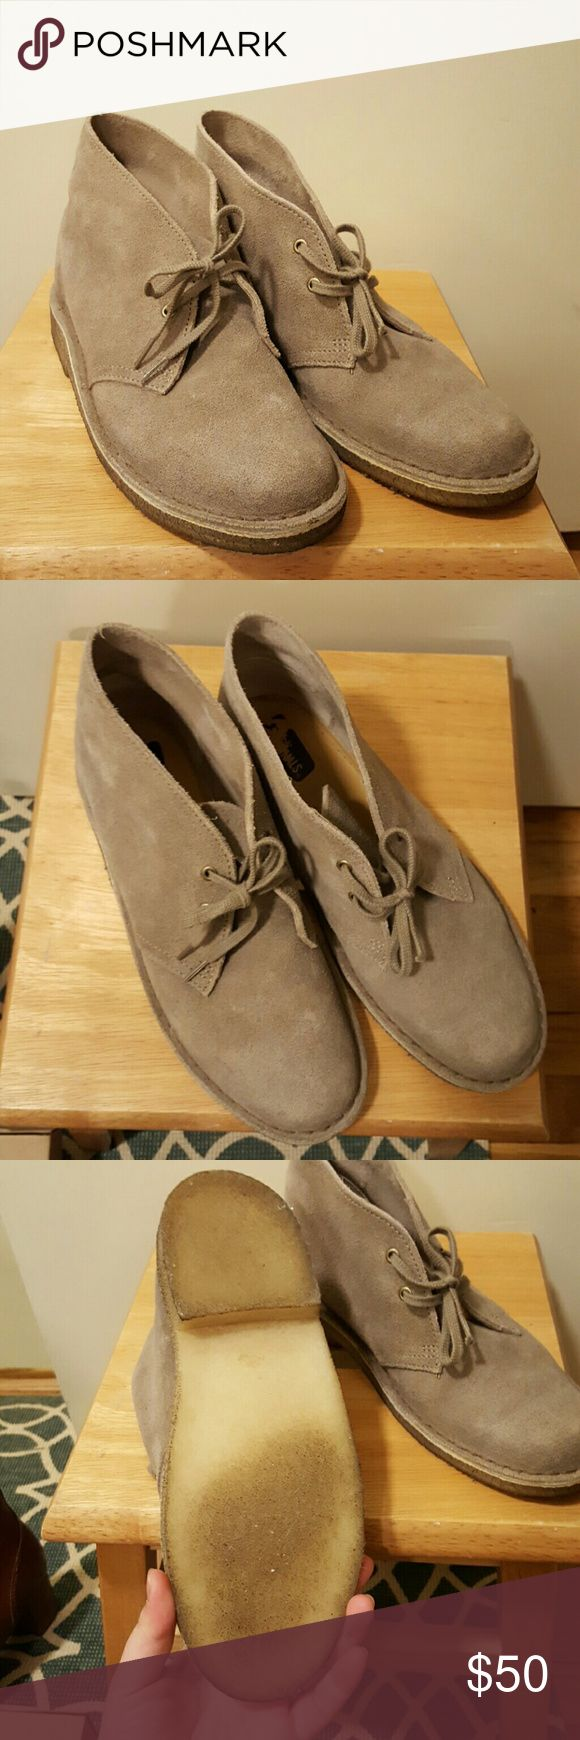 Clarks Desert boots size 8 Taupe suede desert boots from Clarks in size 8 (womens). I've only worn these a few times. Can't figure out how to style them so I'm letting them go to a  better home. They are very comfortable. Clarks Shoes Ankle Boots & Booties